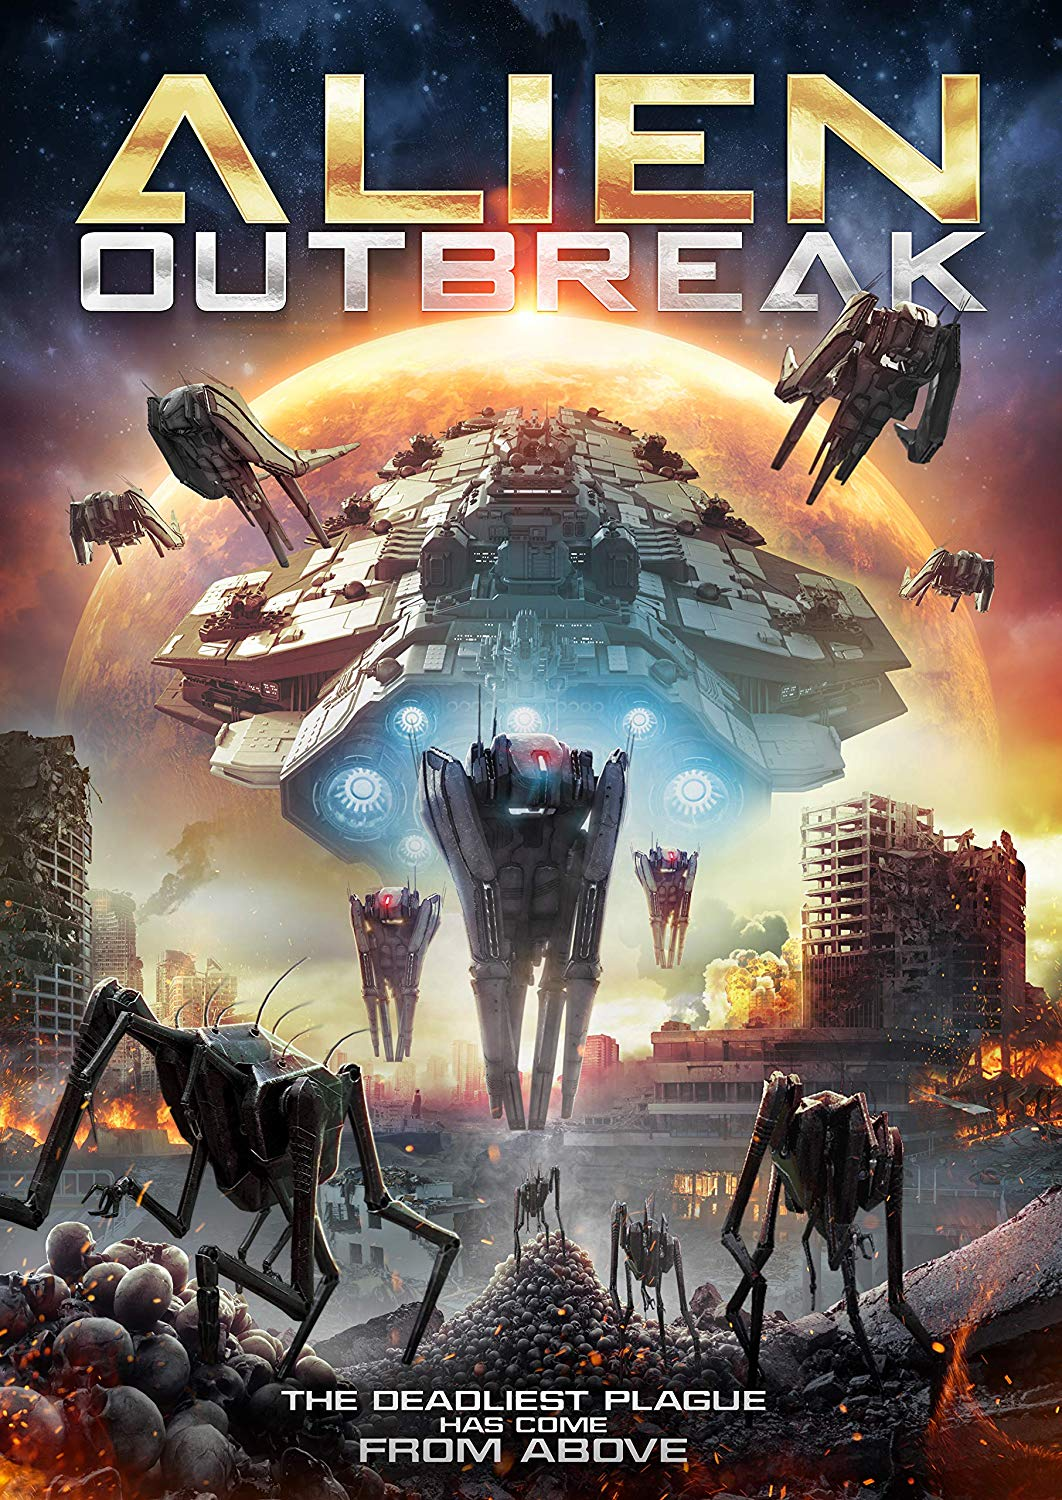 a poster for alien outbreak